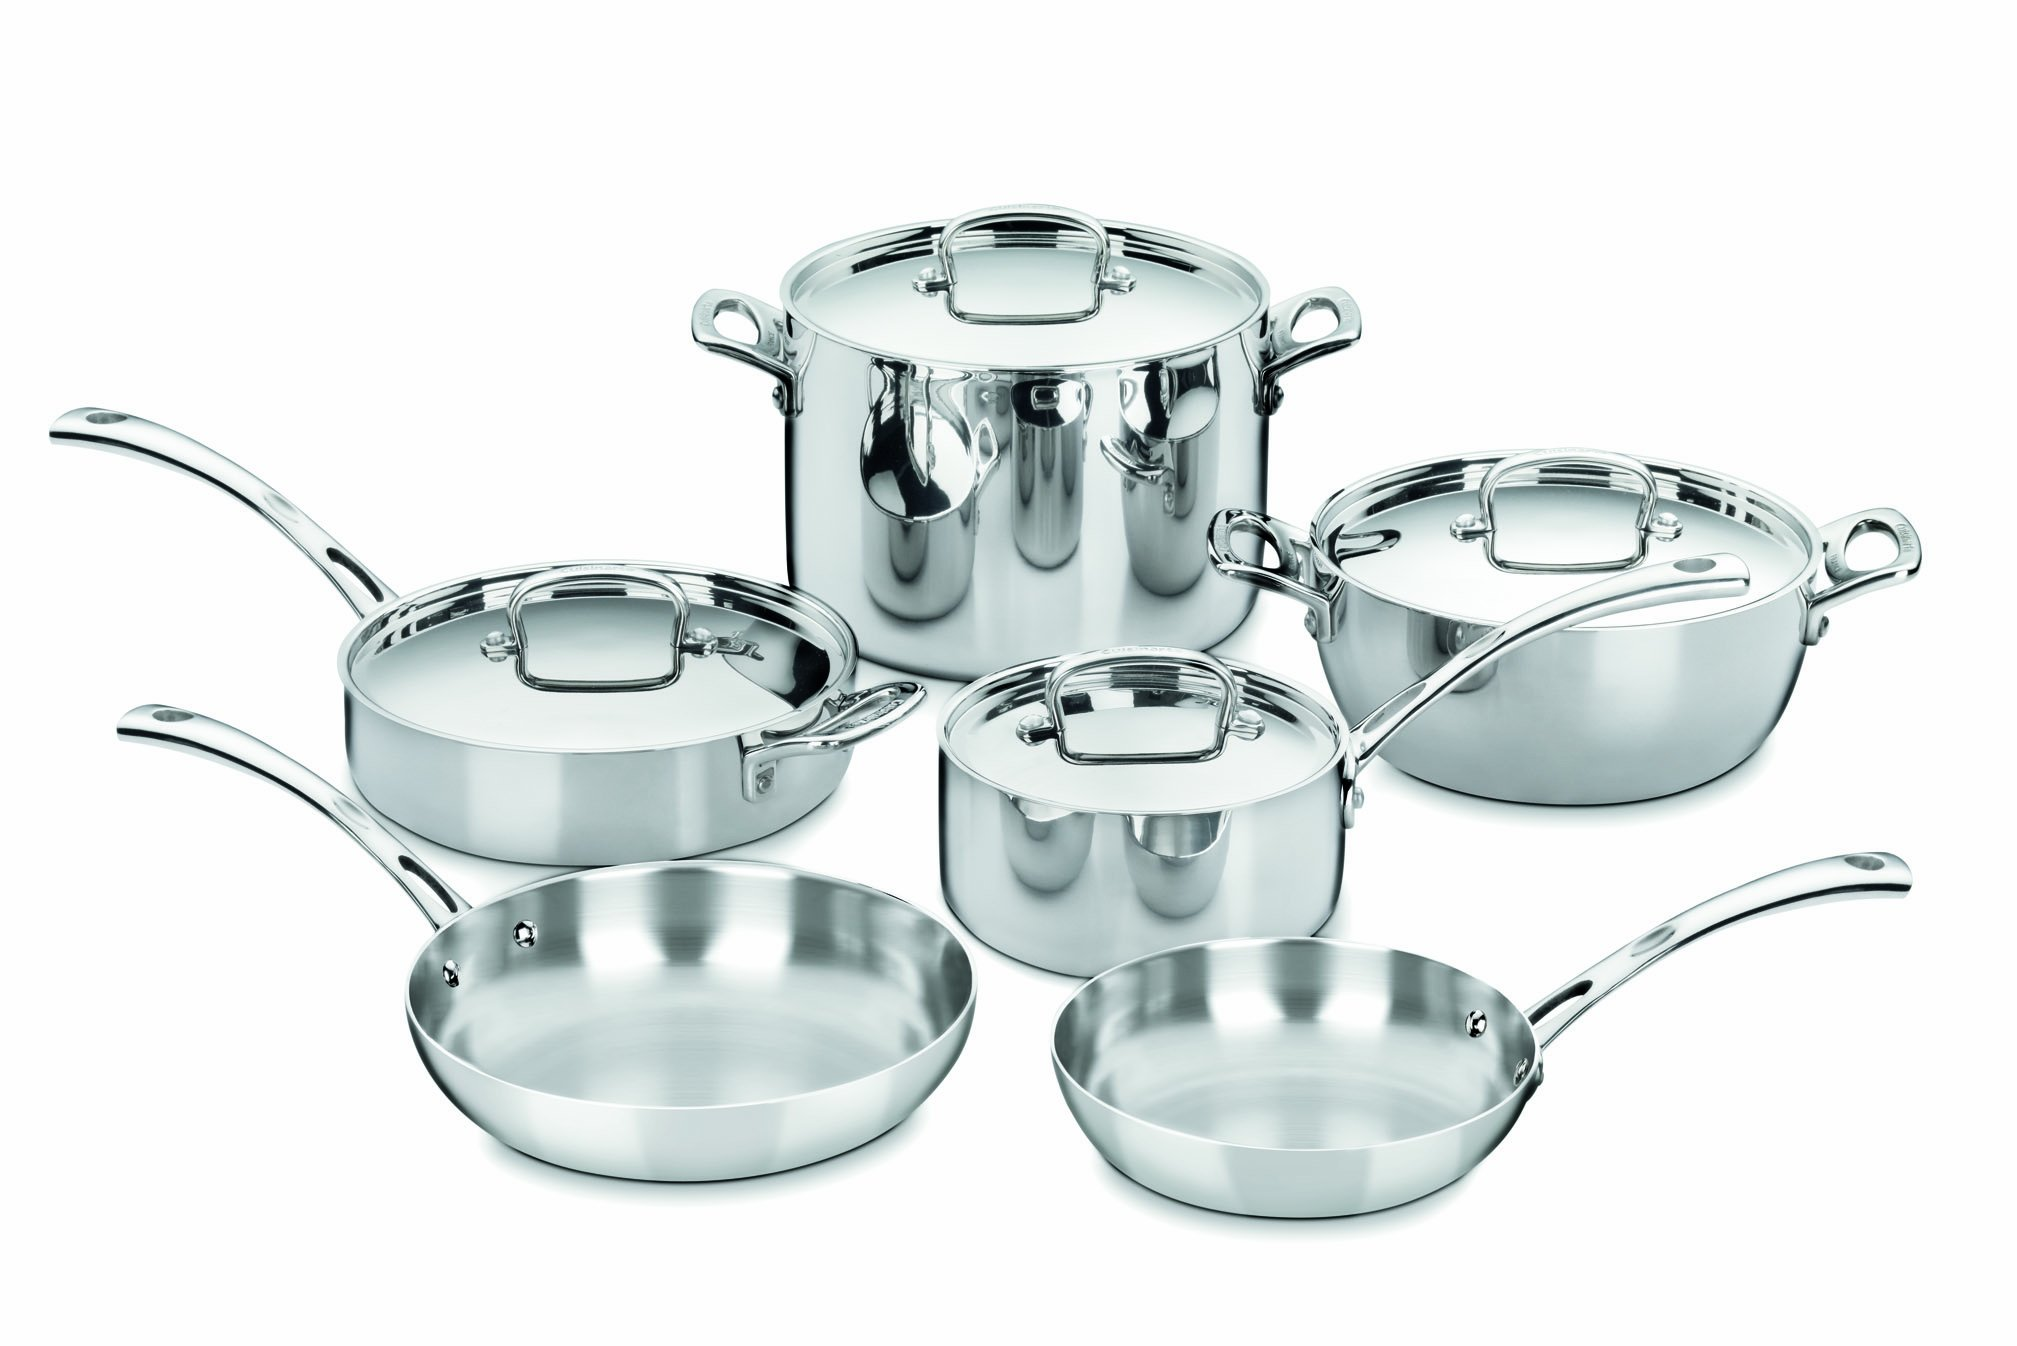 Cuisinart FCT-10 French Classic Tri-Ply Stainless 10-Piece Cookware Set by Cuisinart (Image #1)